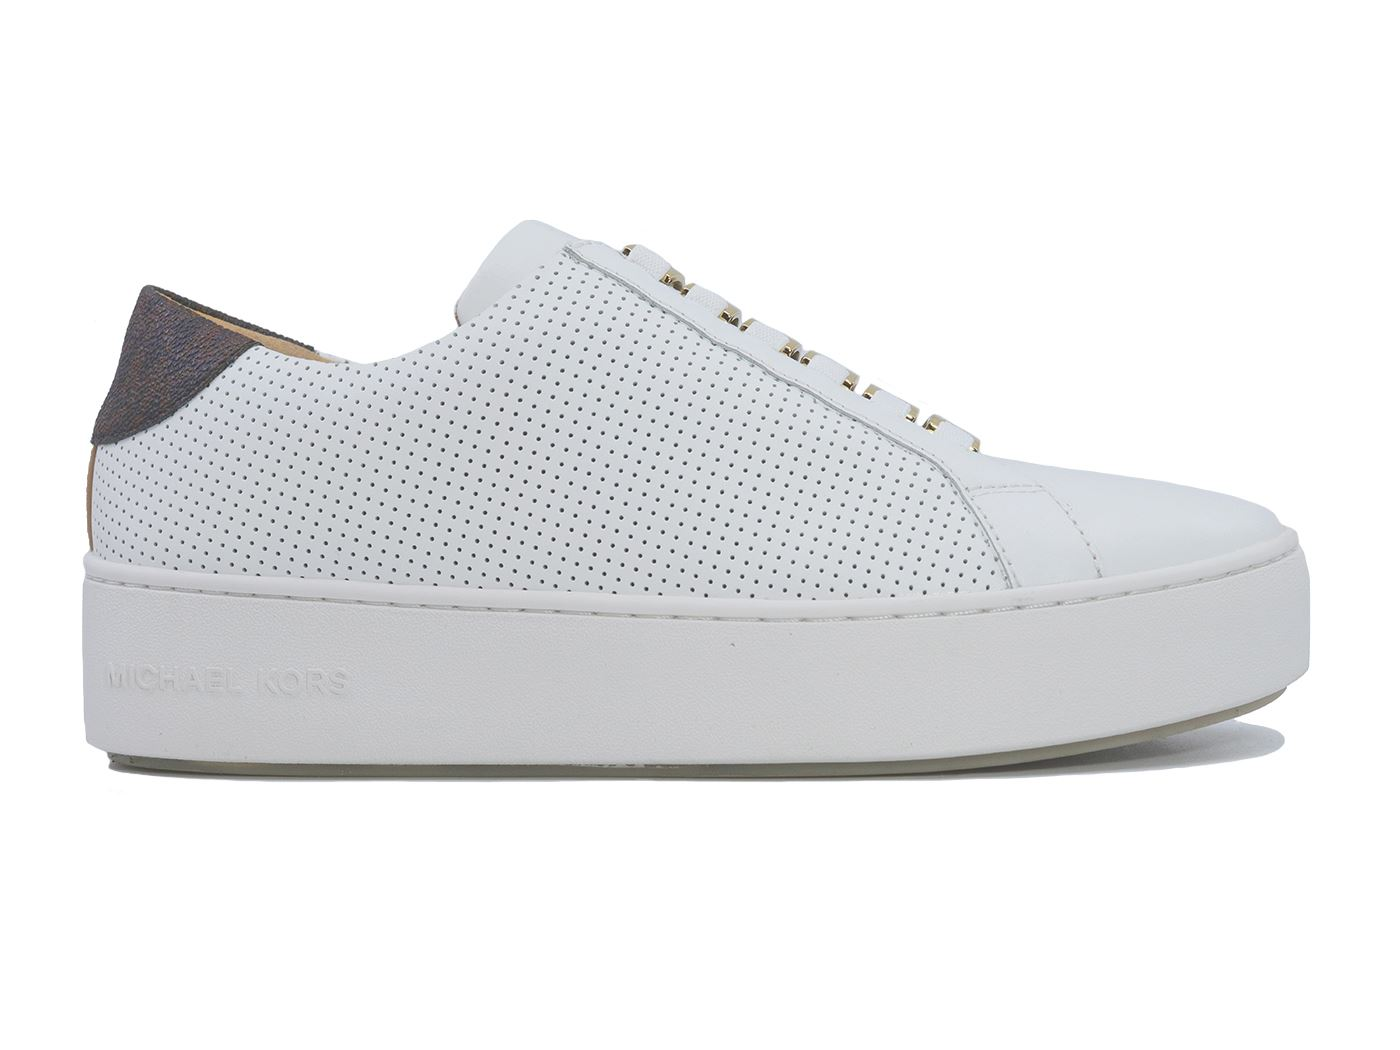 MICHAEL KORS CAMERO SNEAKER LASERED SNEAKERS DONNA BIANCA